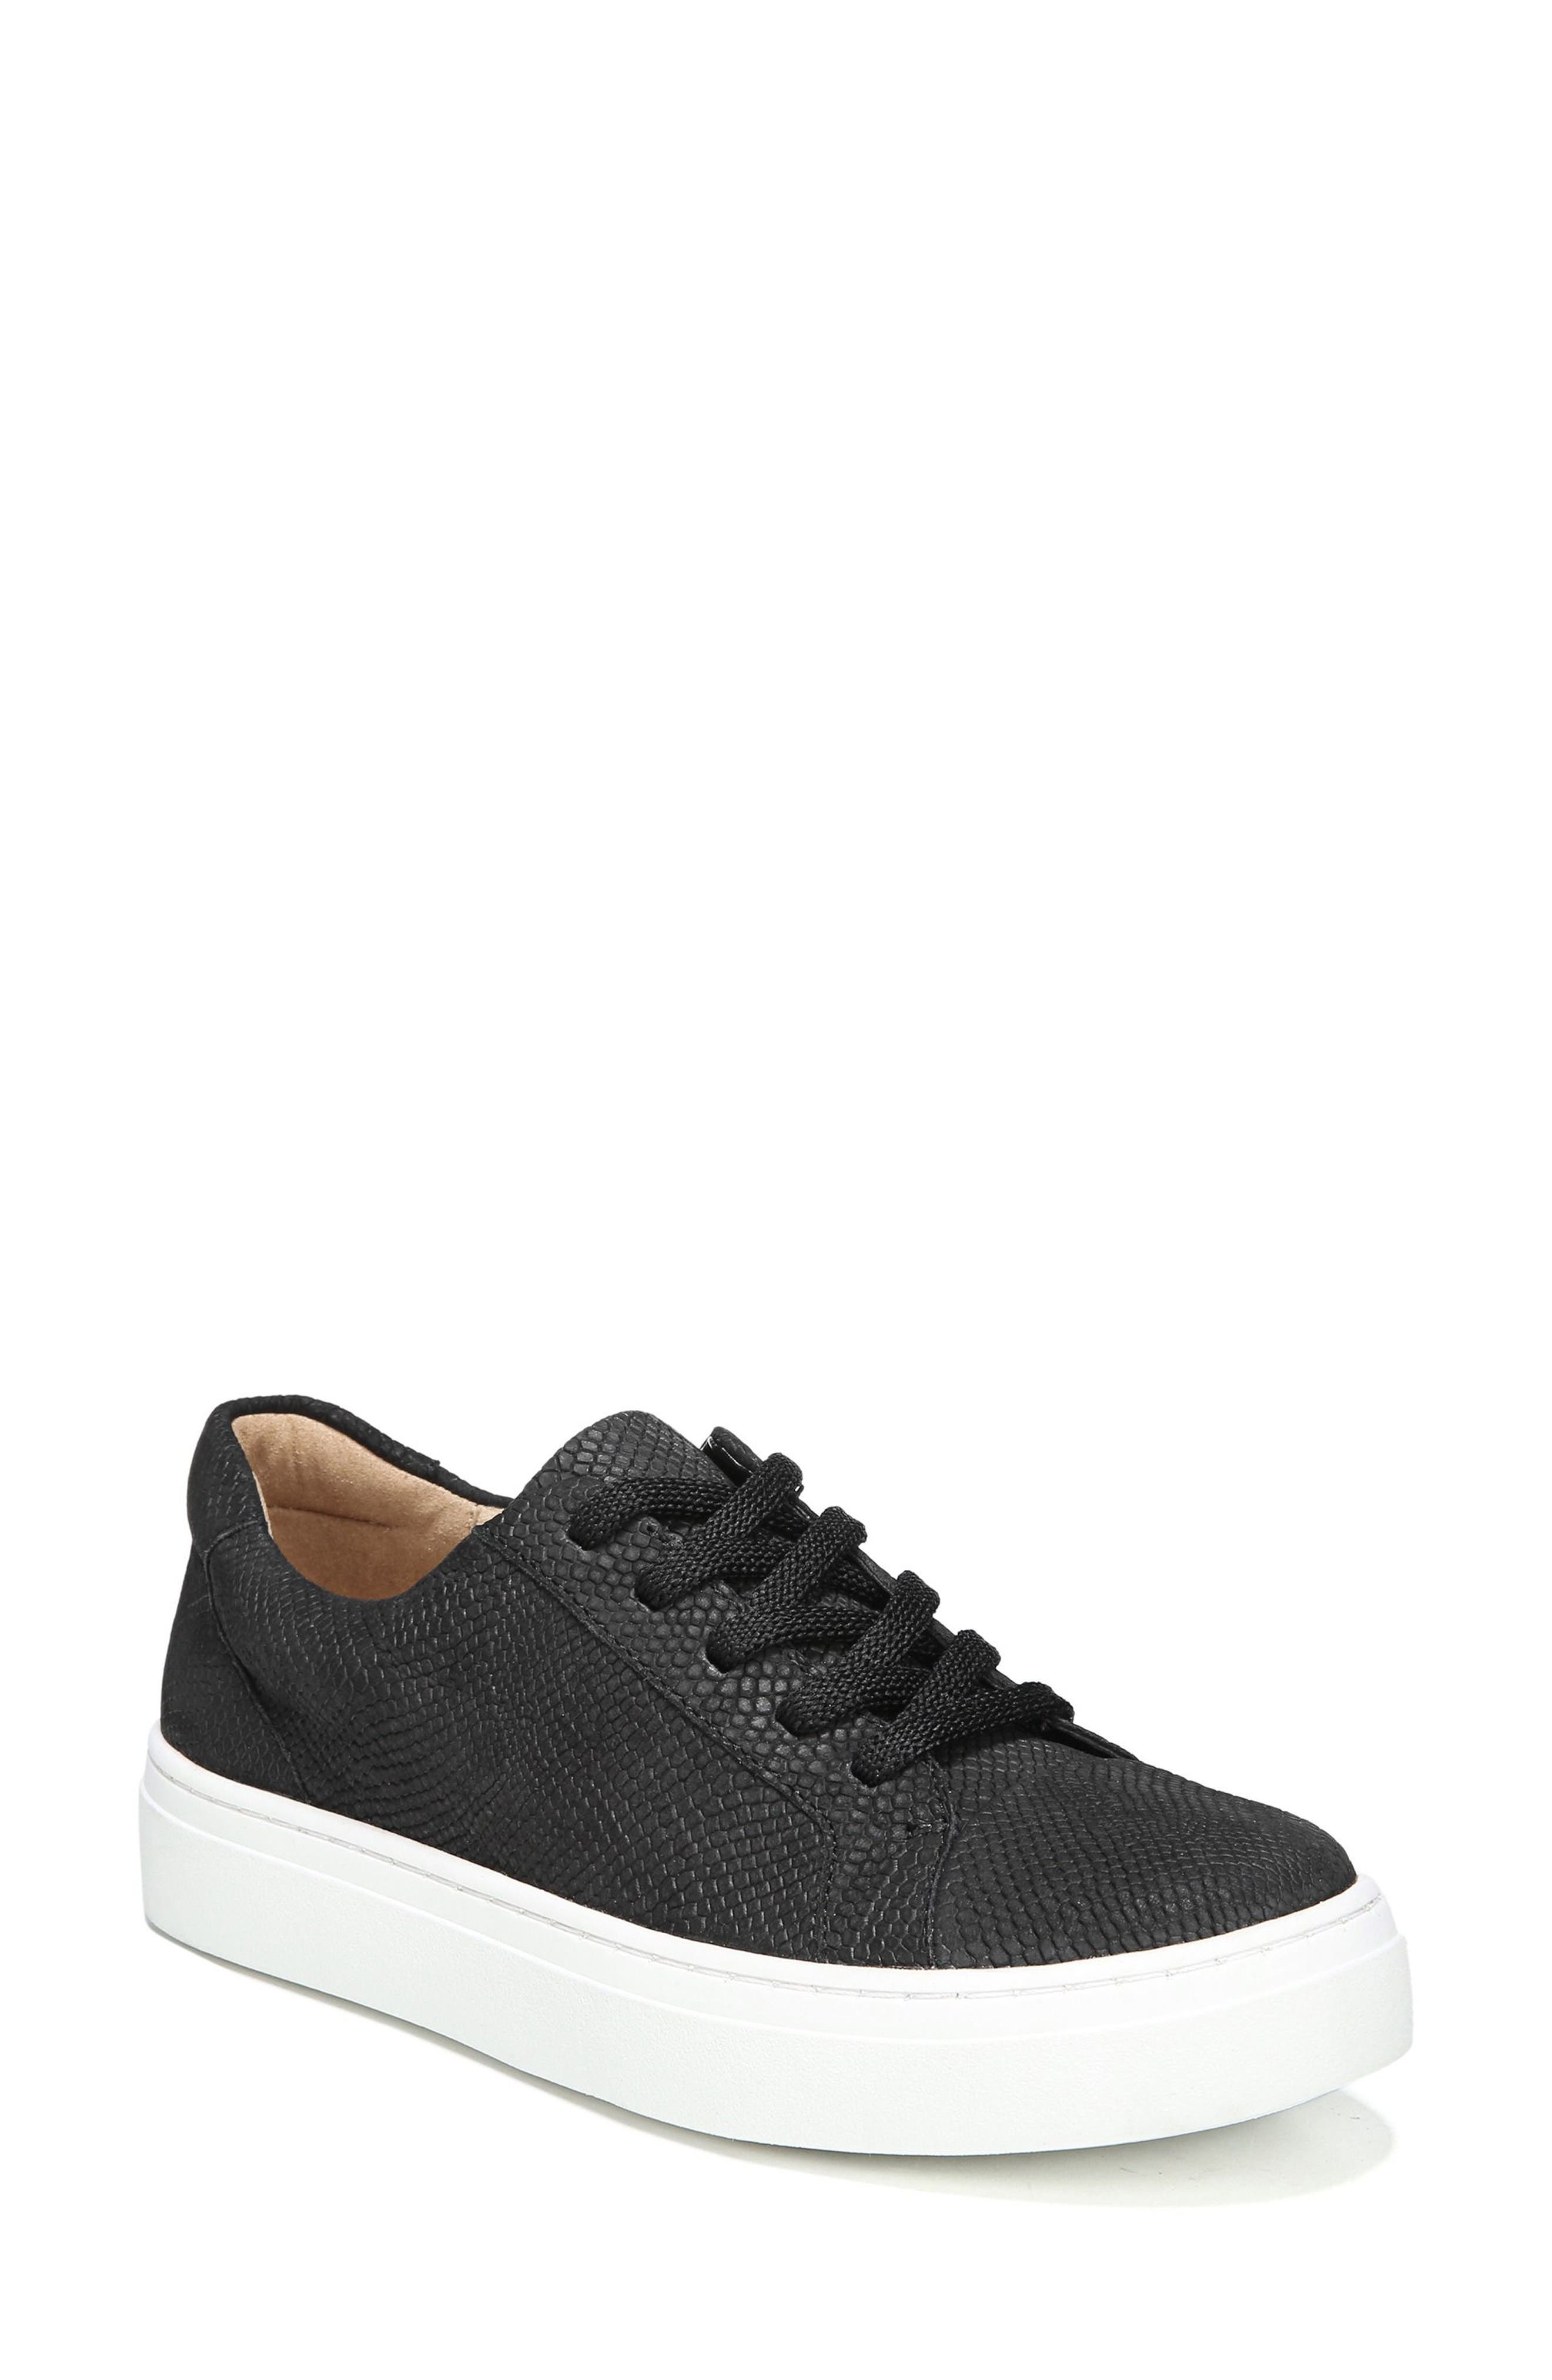 Cairo Sneaker,                         Main,                         color,